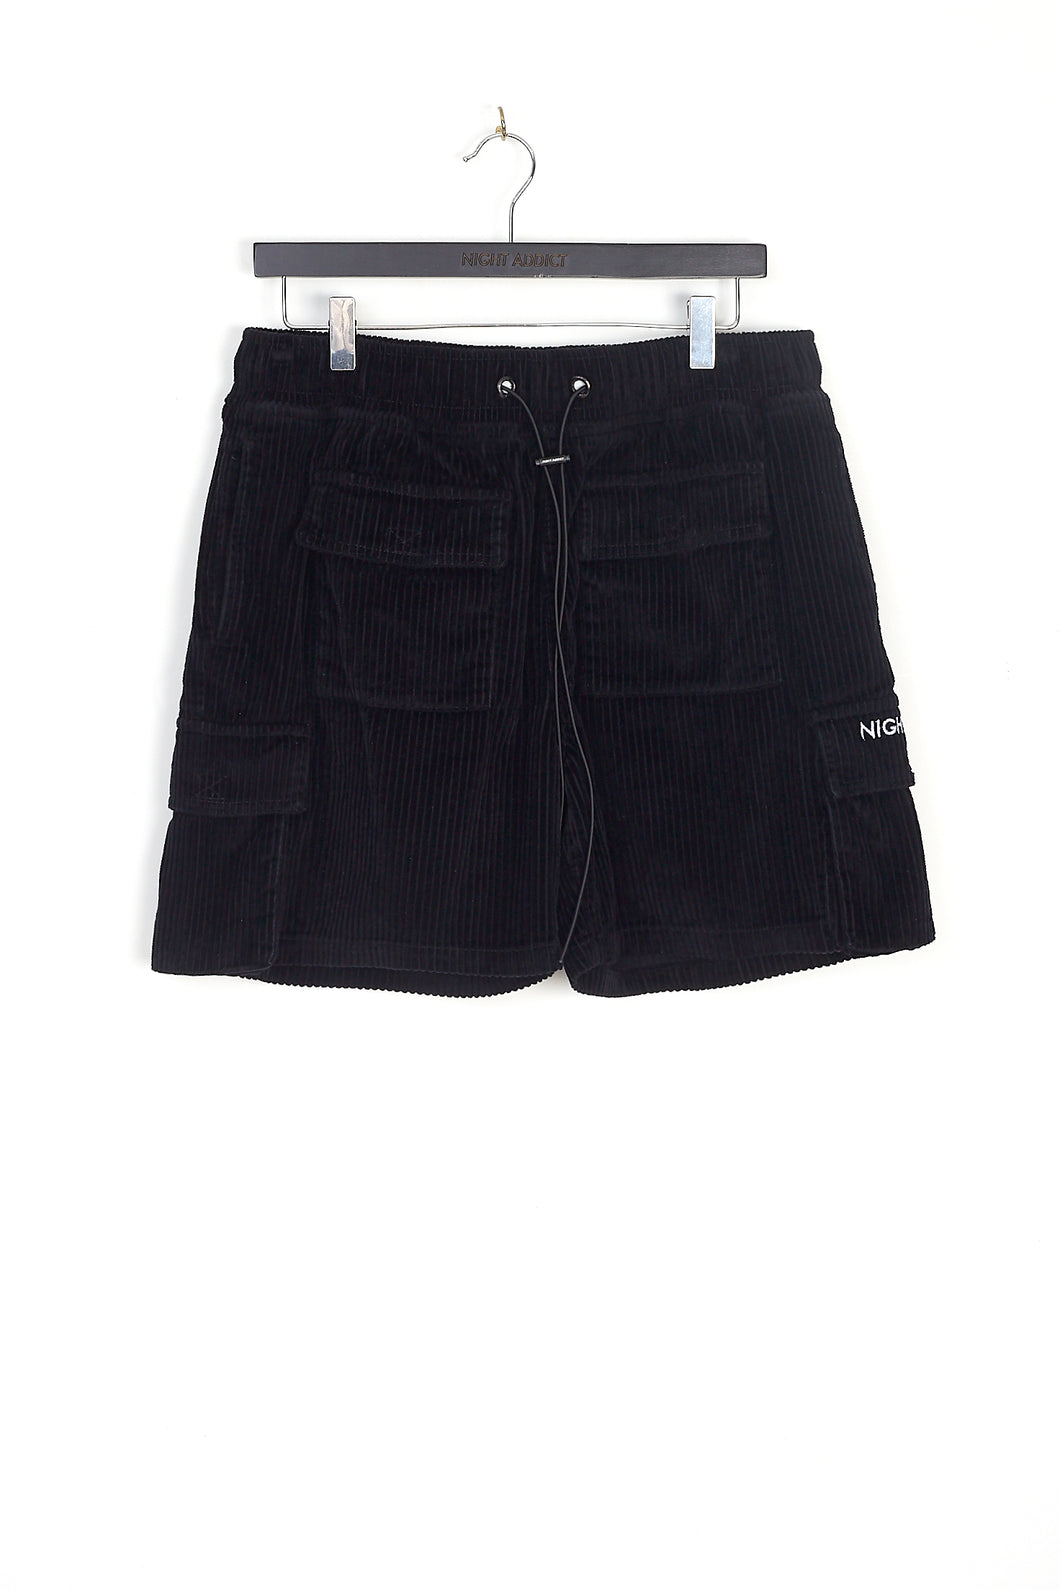 NIGHT ADDICT BLACK CORD CARGO SHORTS